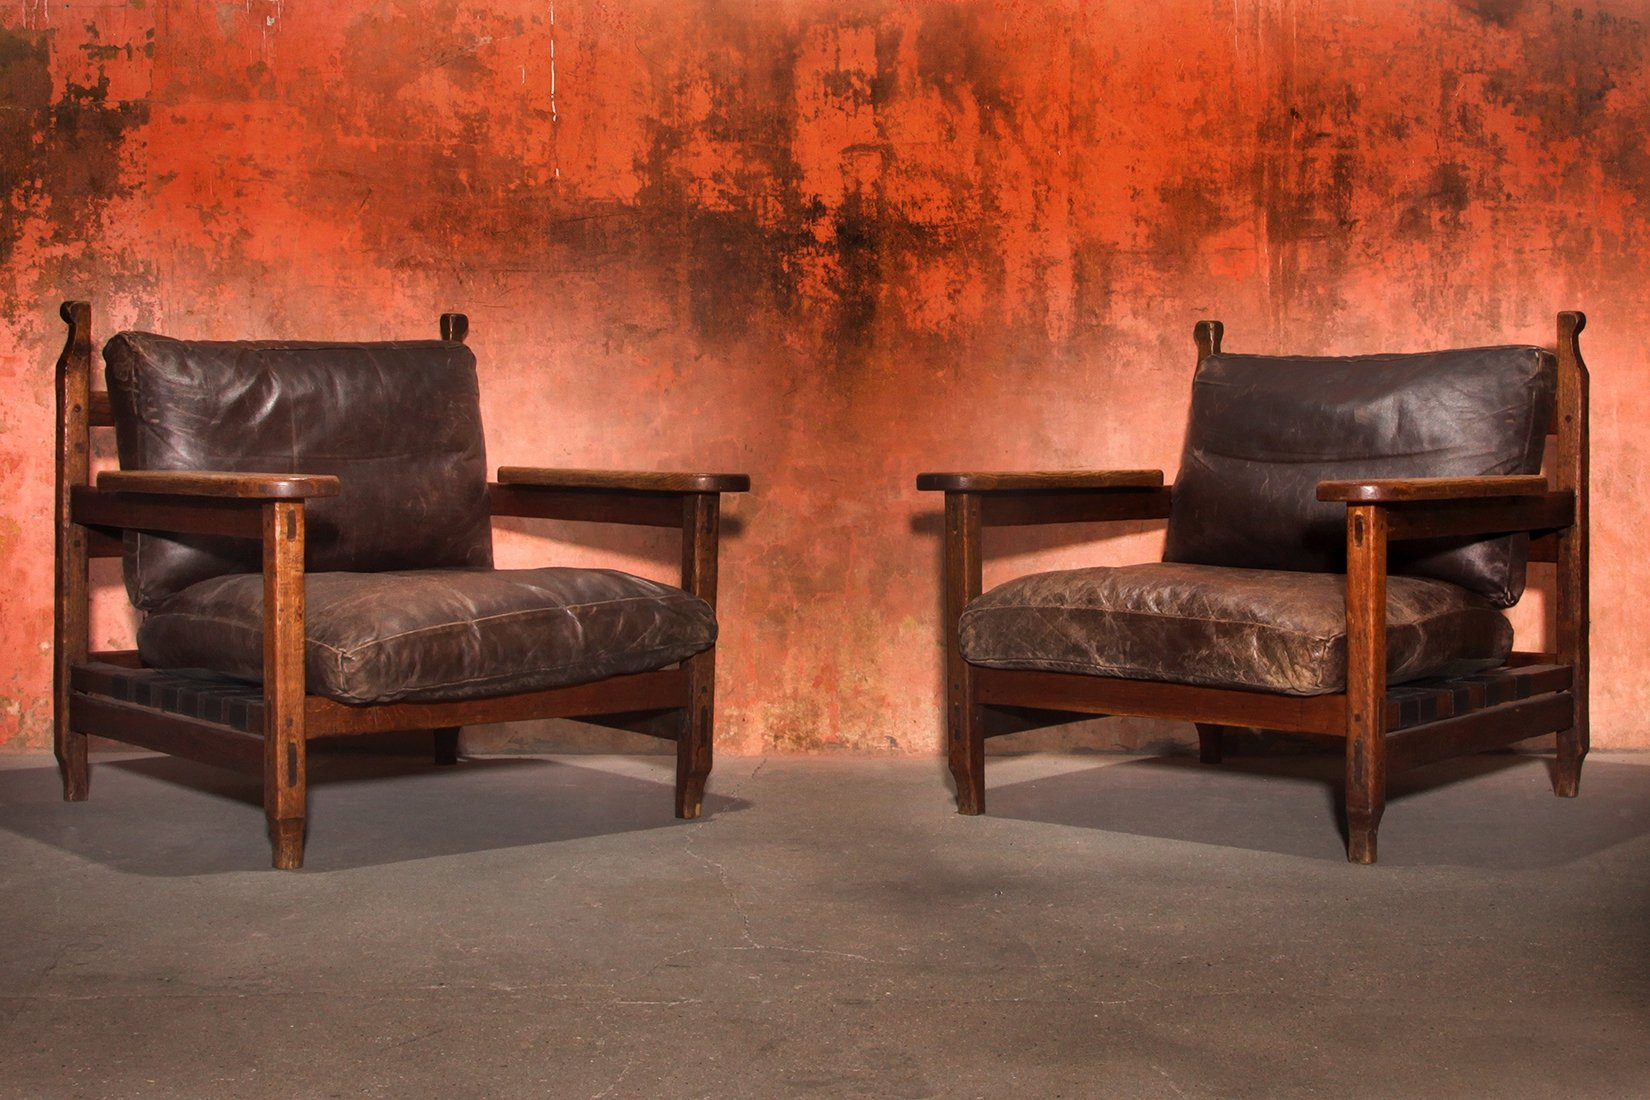 Brutalist Vintage Oak Wood Lounge Arm, Lounge Chairs With Wooden Arms